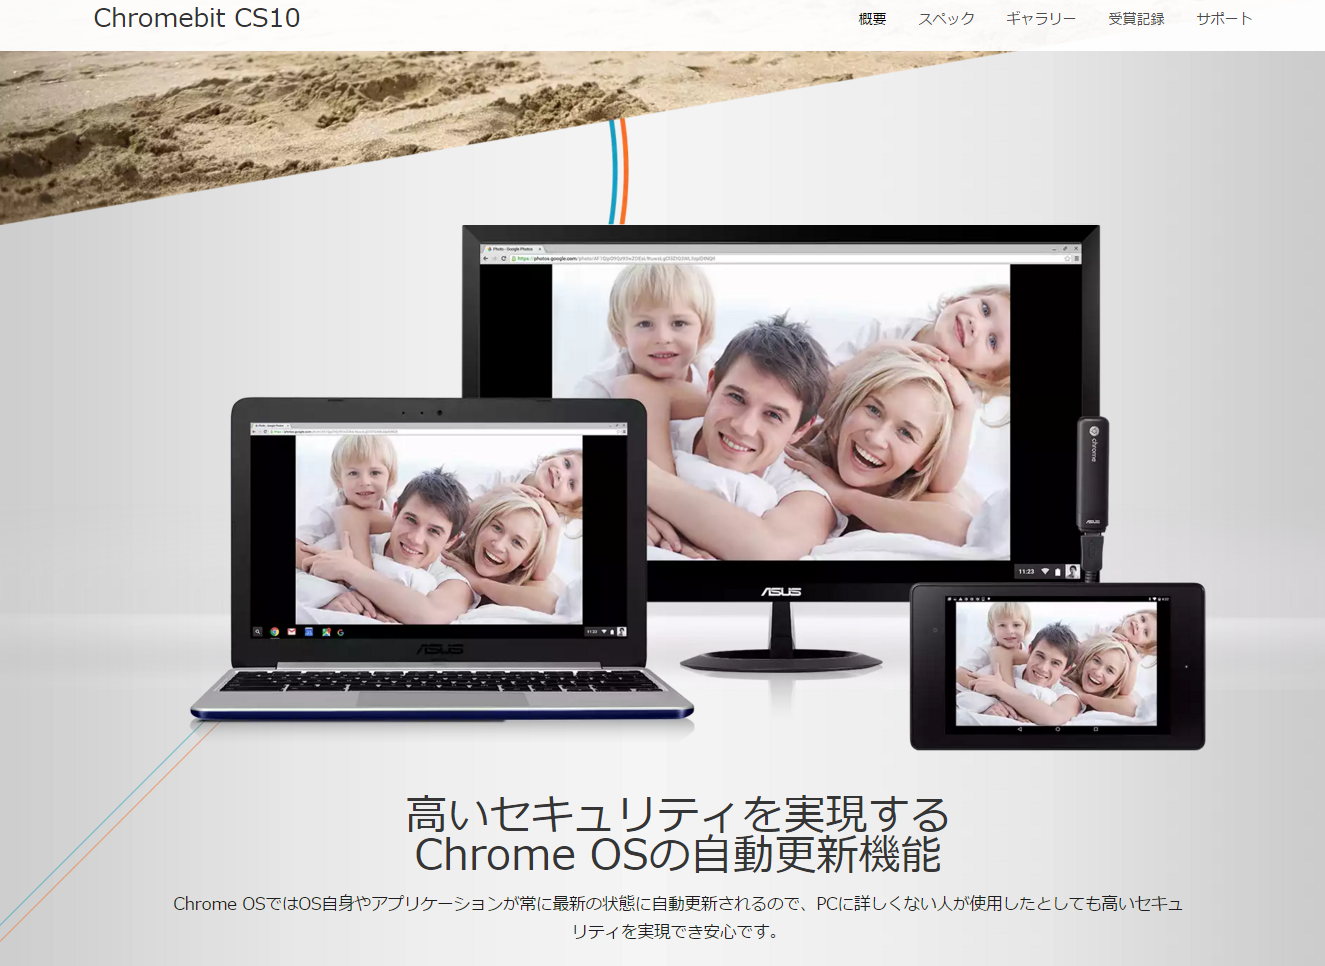 1153-201601_ASUS Chromebit CS10 04